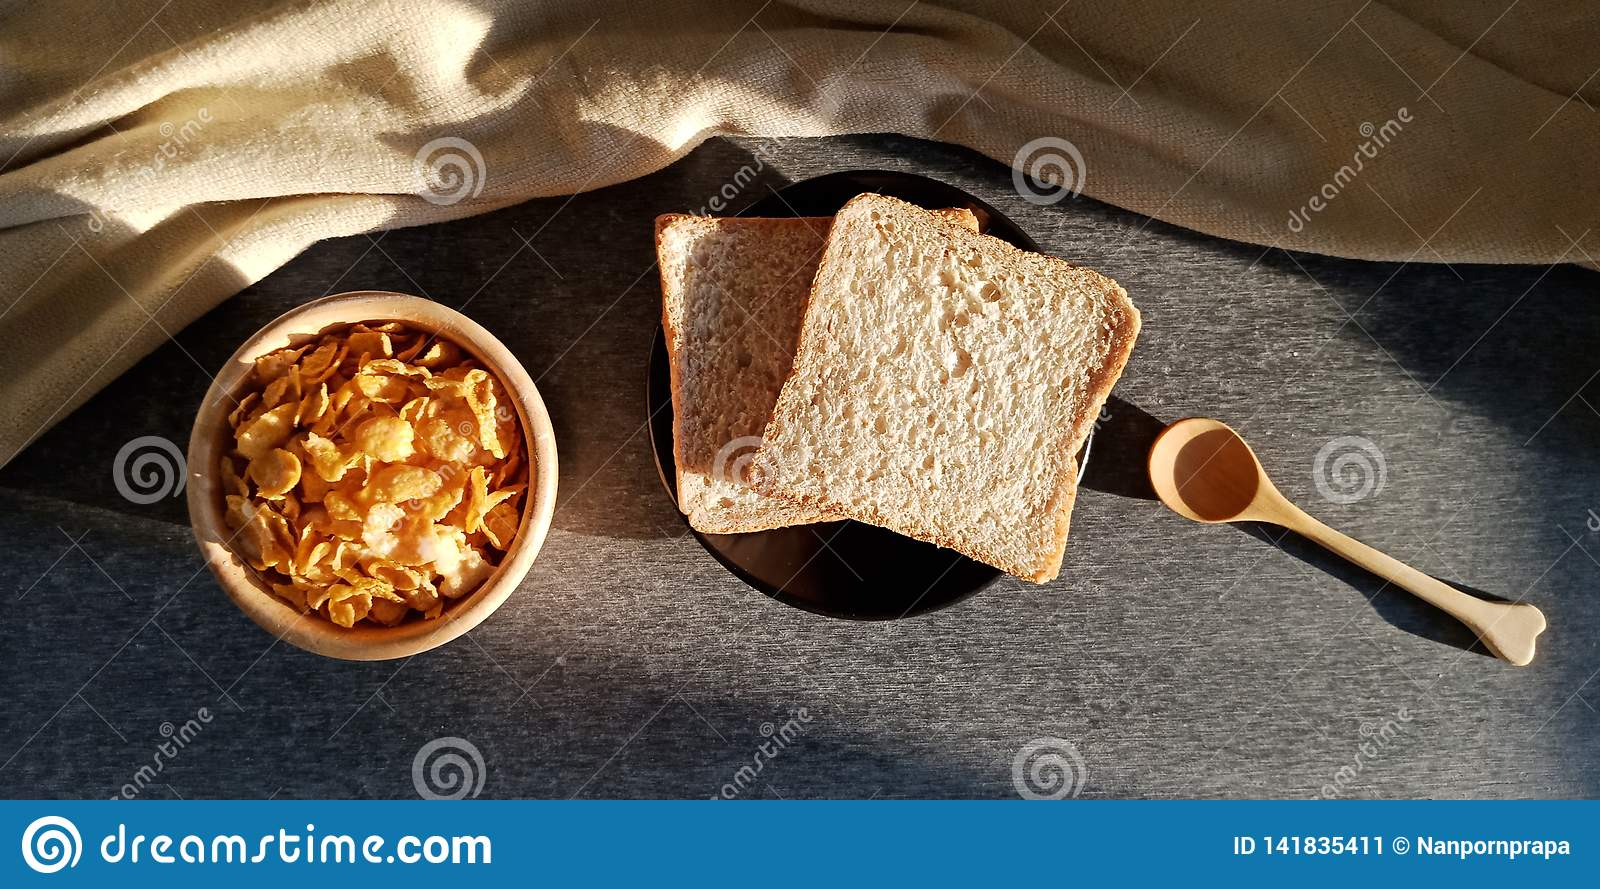 Breakfast : bread and cereal for the morning